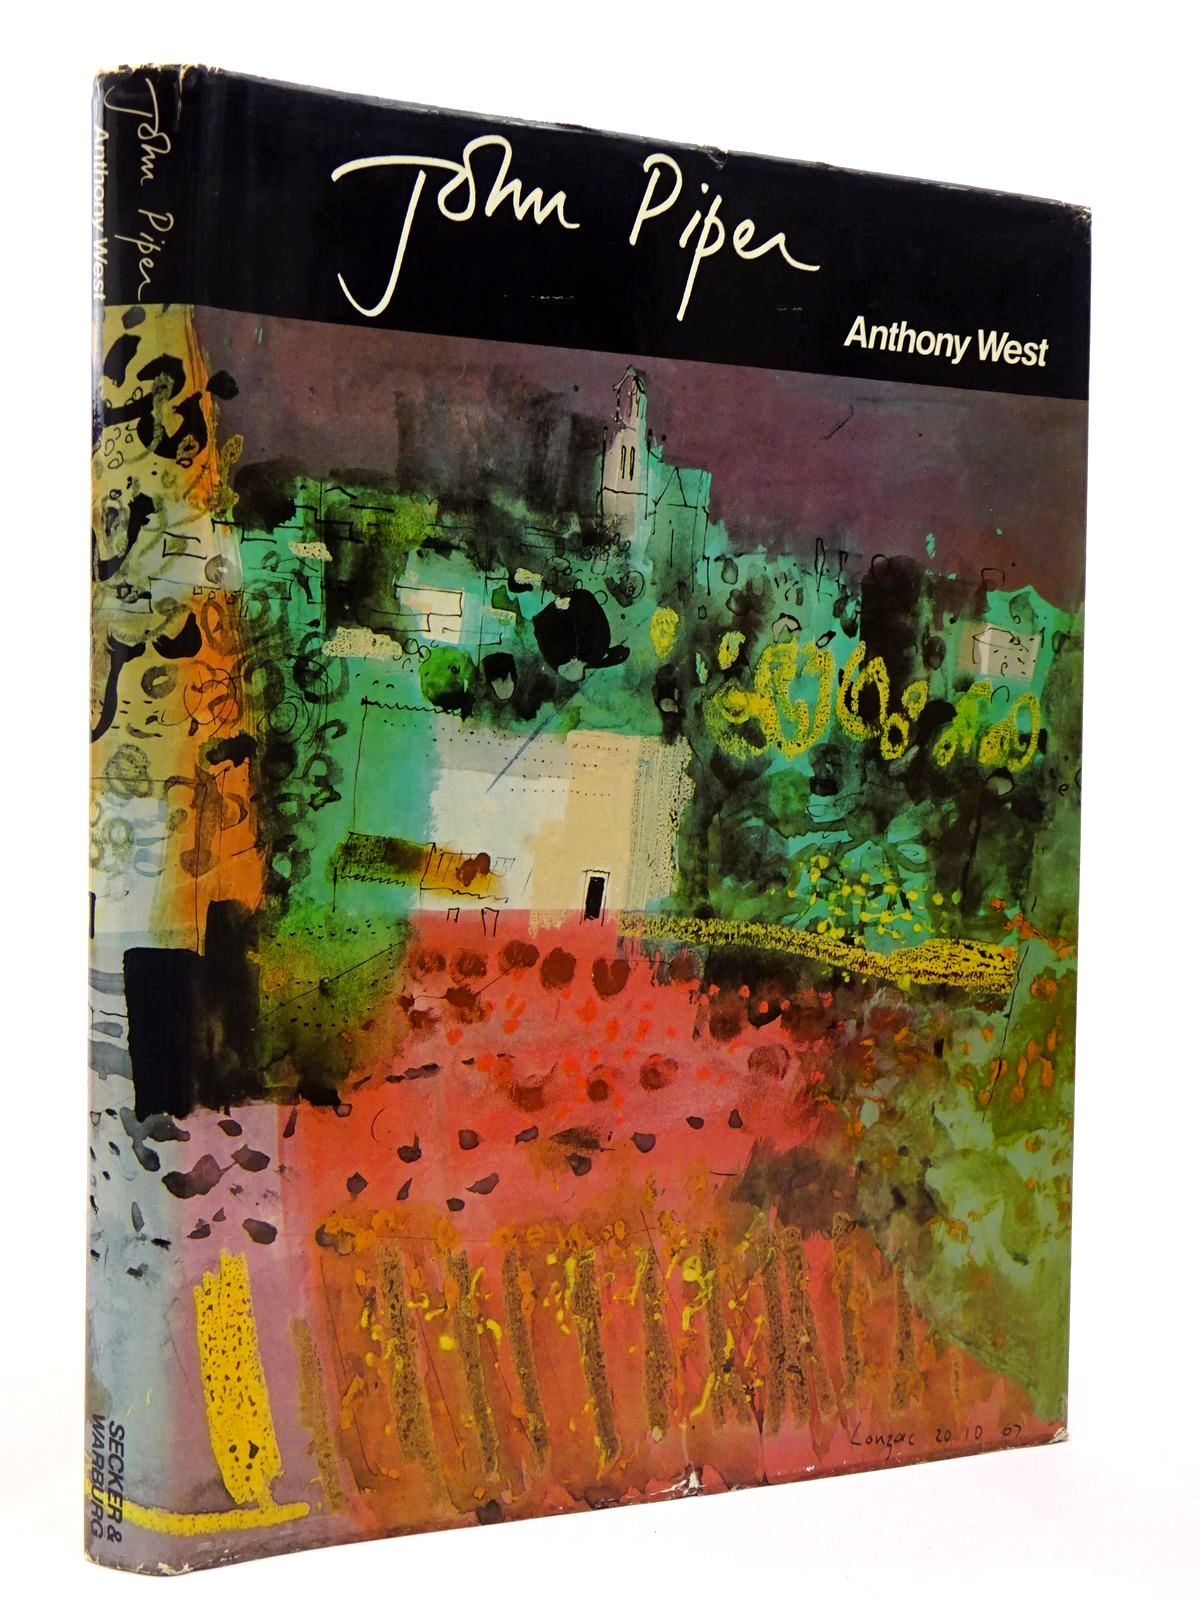 Photo of JOHN PIPER written by West, Anthony illustrated by Piper, John published by Secker & Warburg (STOCK CODE: 2129592)  for sale by Stella & Rose's Books